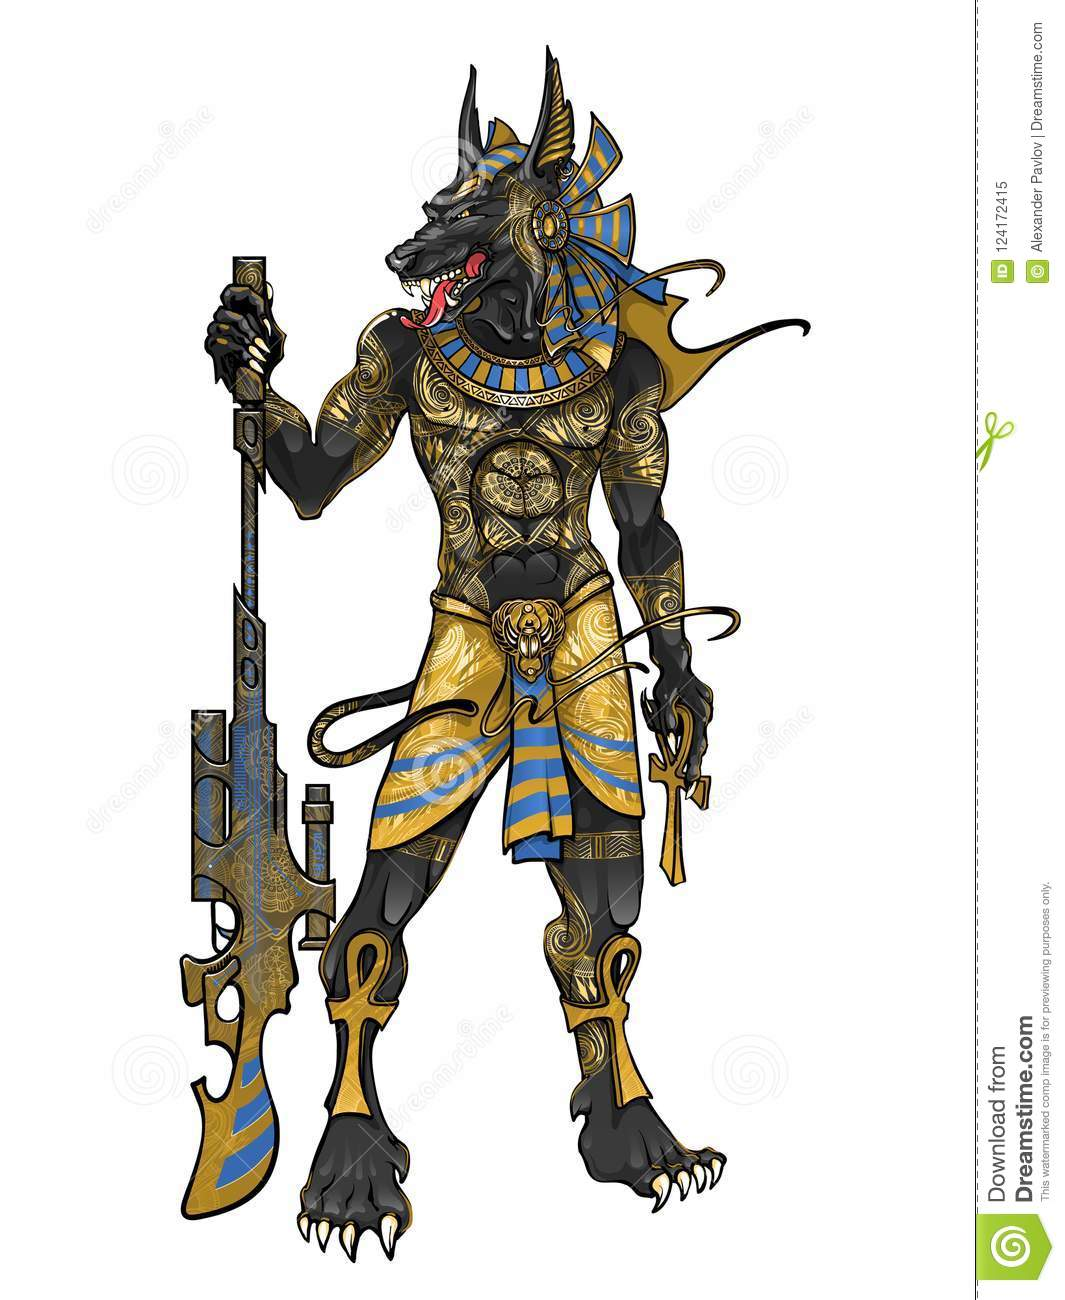 Egyptian God Of Death Anubis With Weapons Stock Illustration